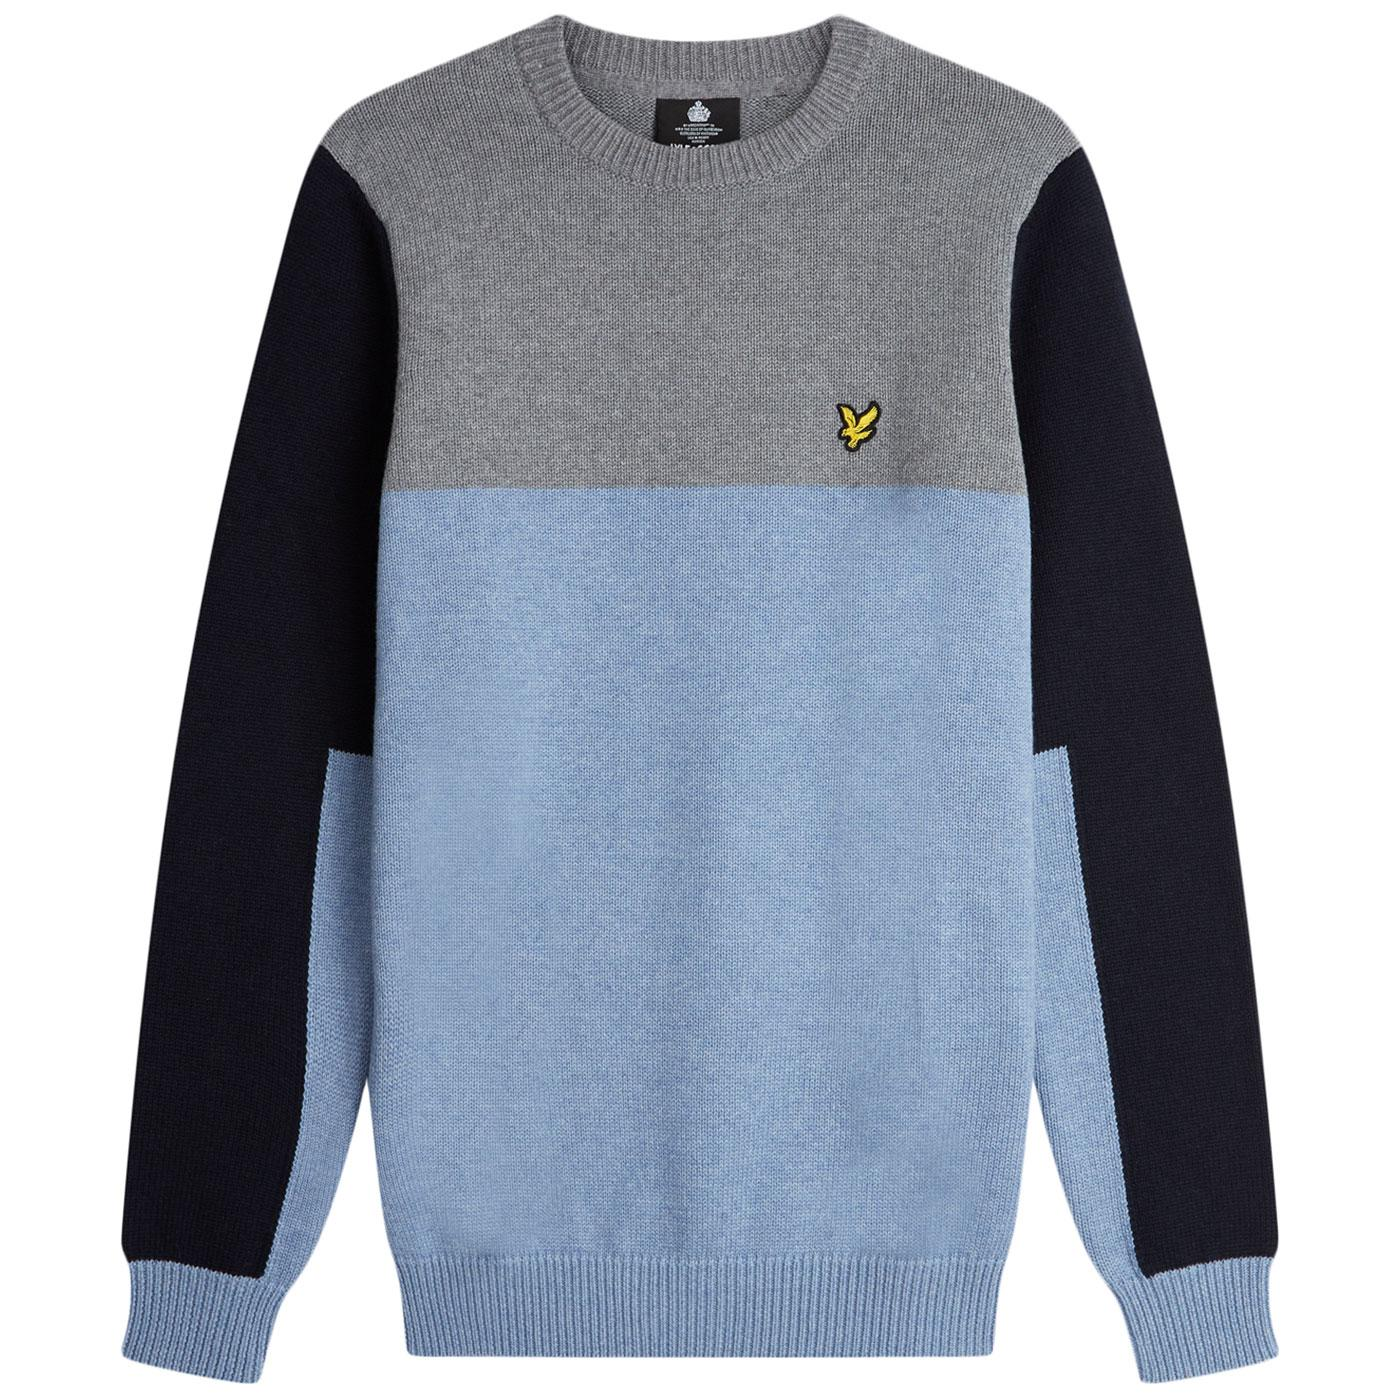 LYLE & SCOTT Retro Mod Colour Block Knit Jumper SB